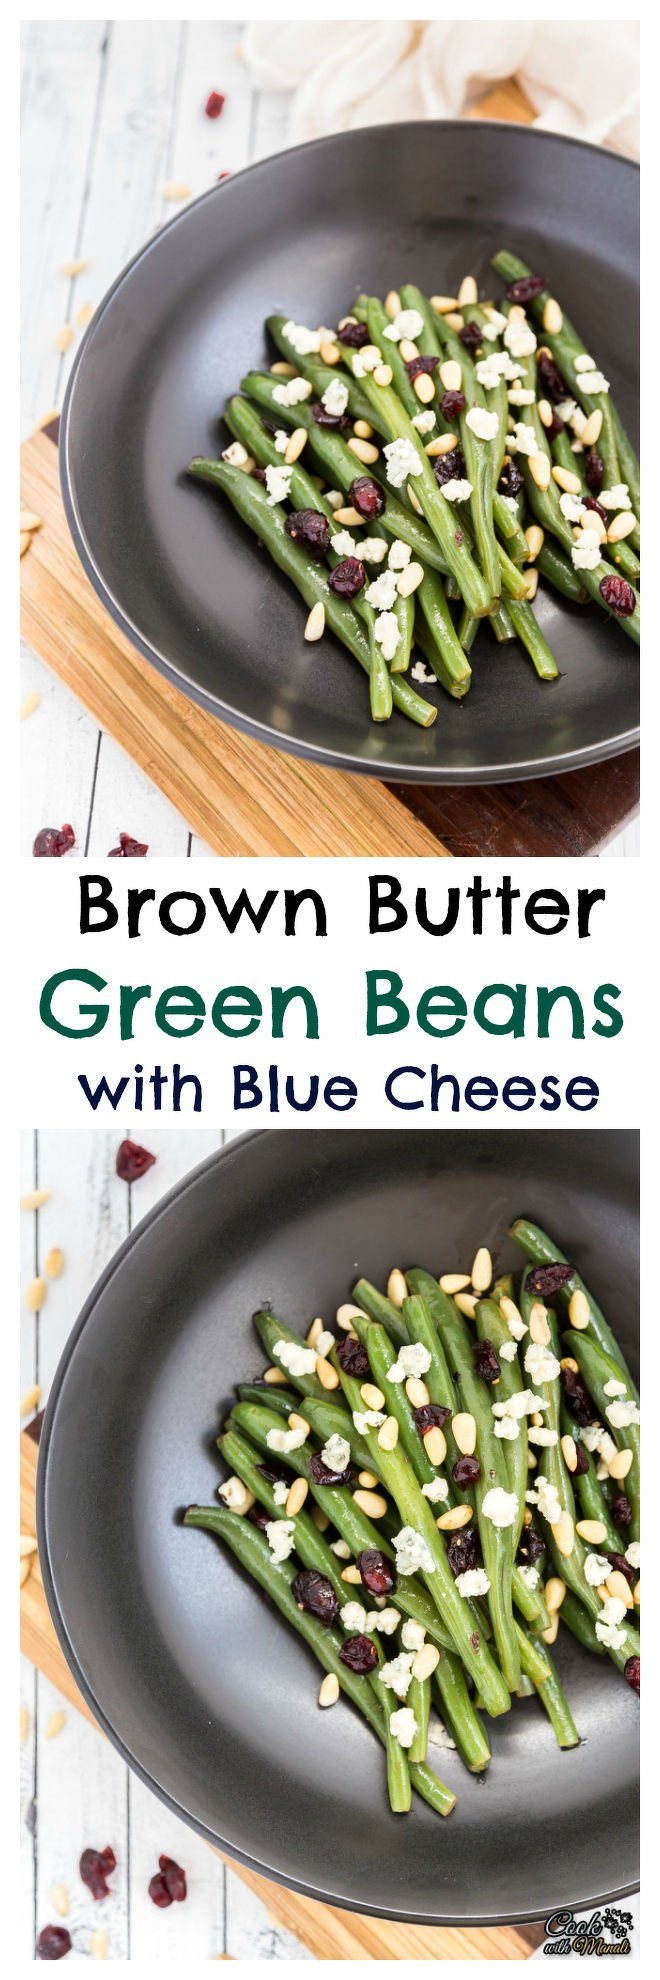 Brown Butter Green Beans with Blue Cheese Collage-nocwm